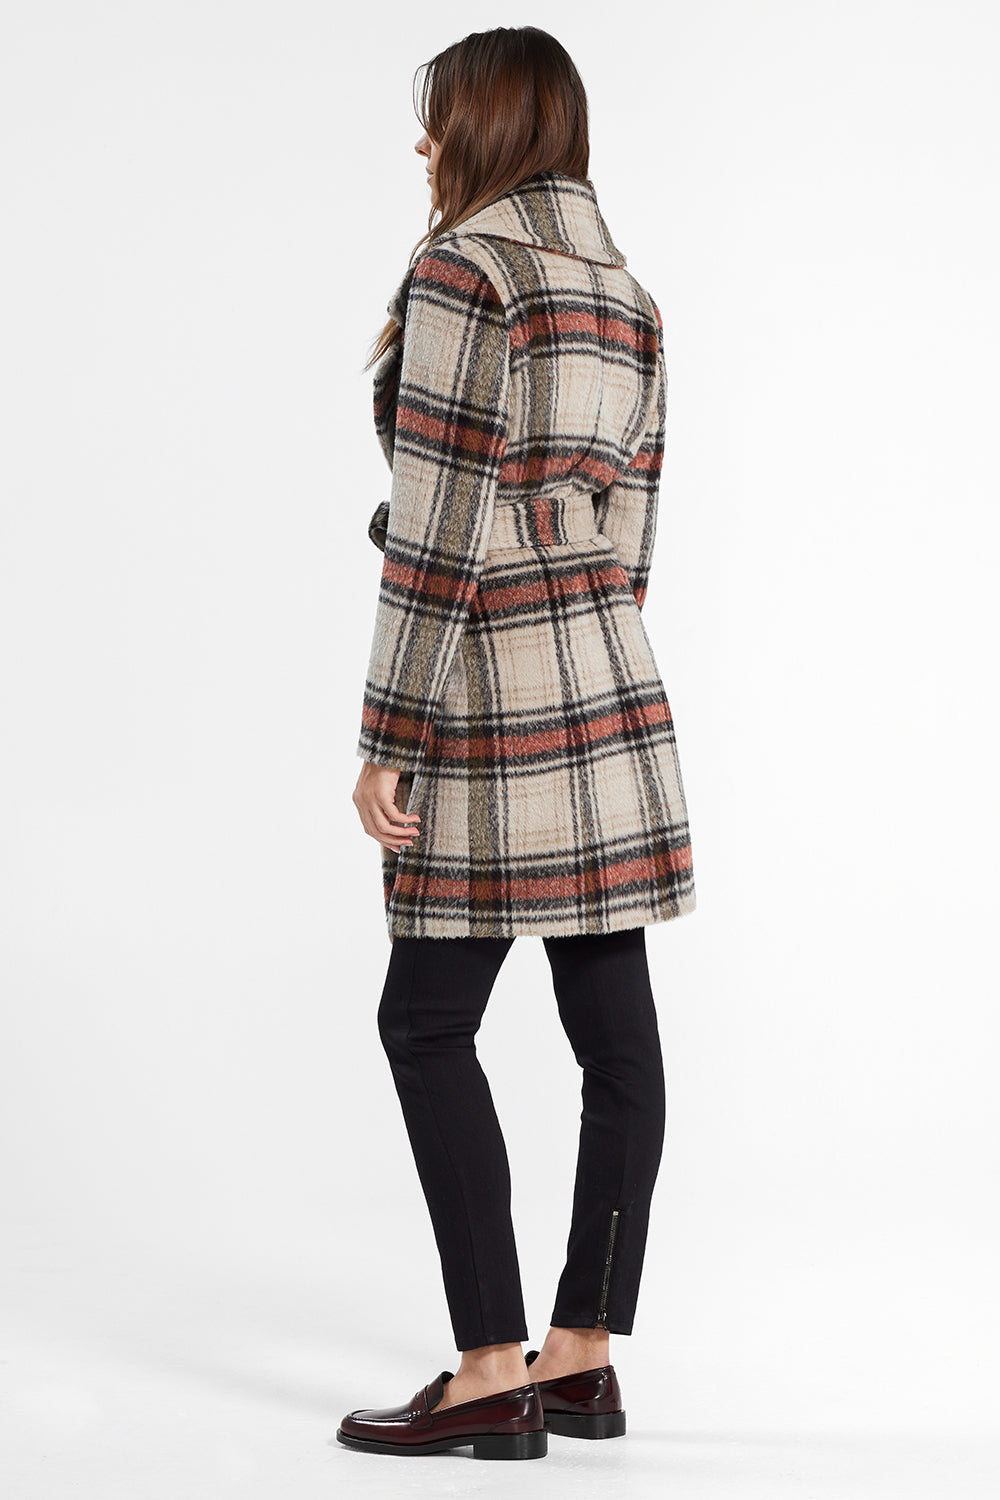 Sentaler Plaid Mid Length Notched Collar Wrap Coat featured in Suri Alpaca and available in Sand Plaid. Seen from back.